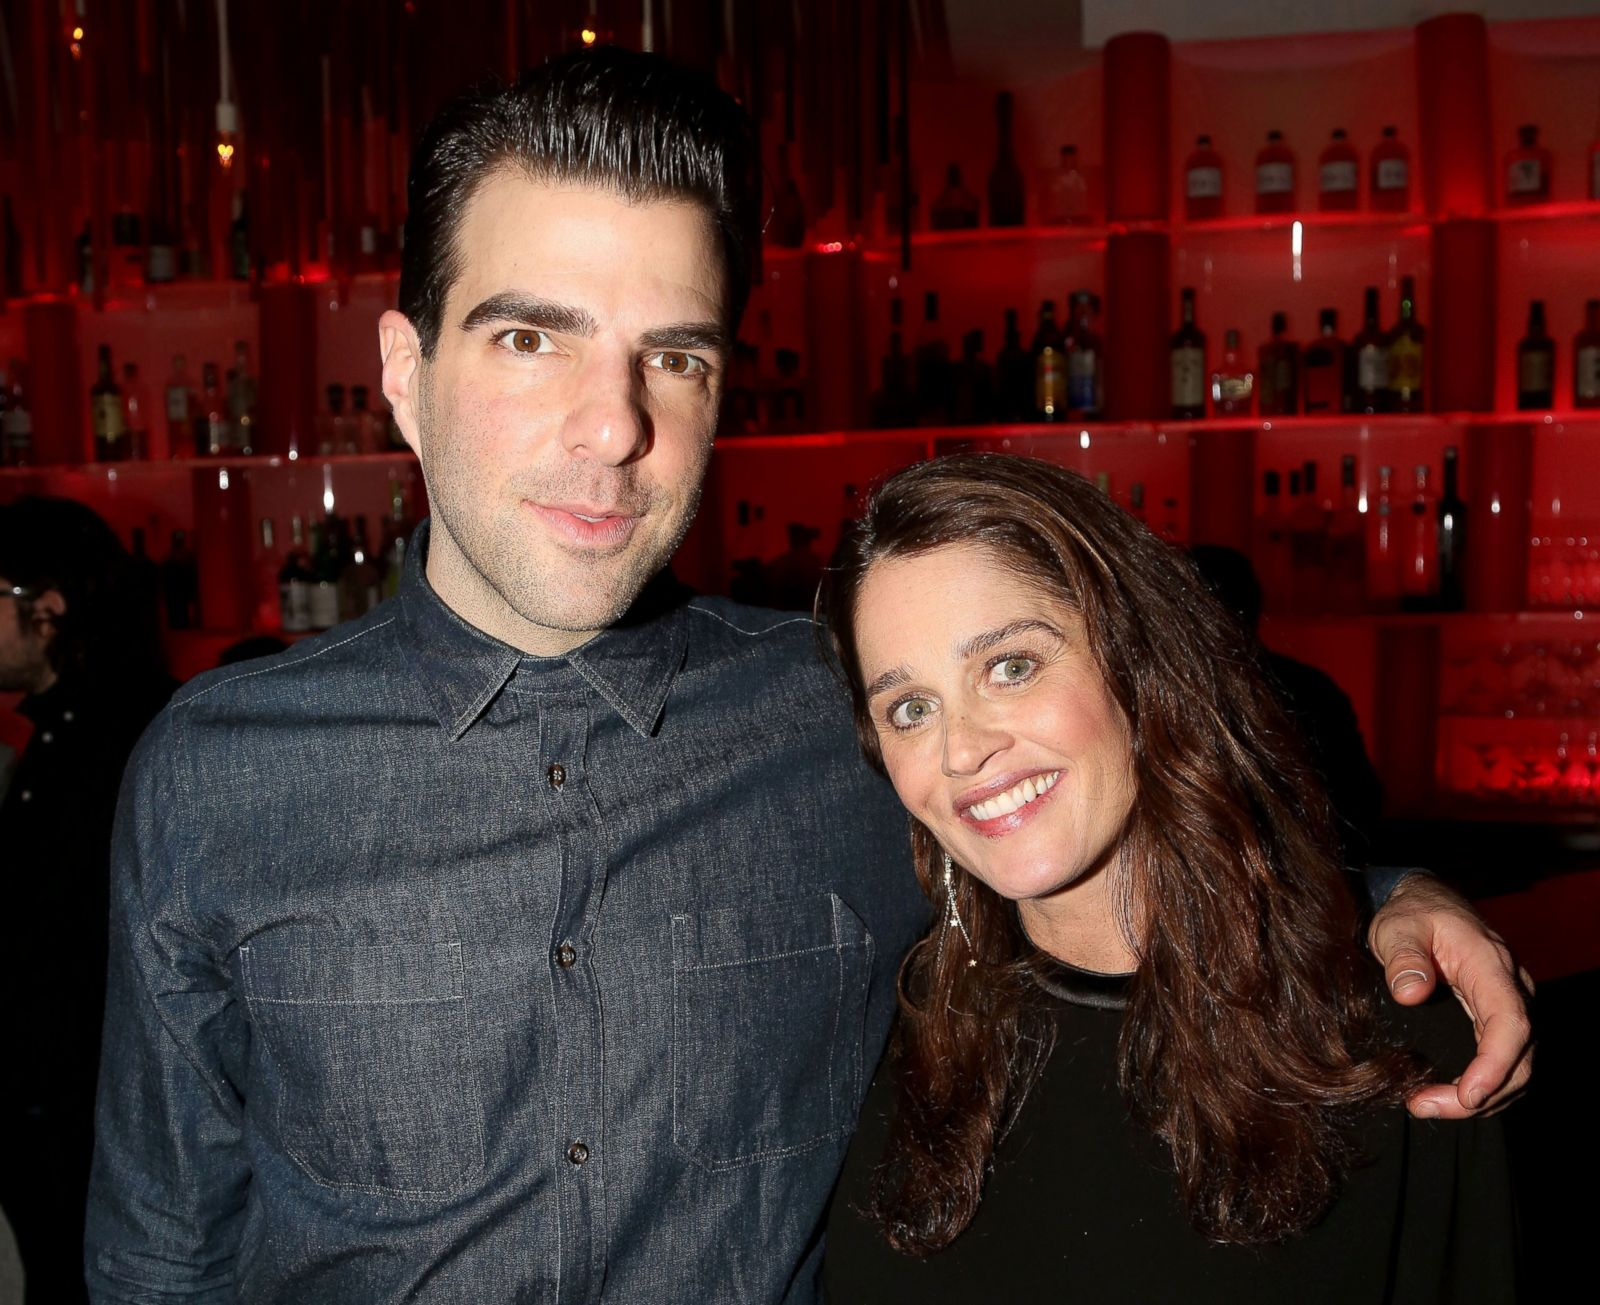 Zachary Quinto And Robin Tunney Picture